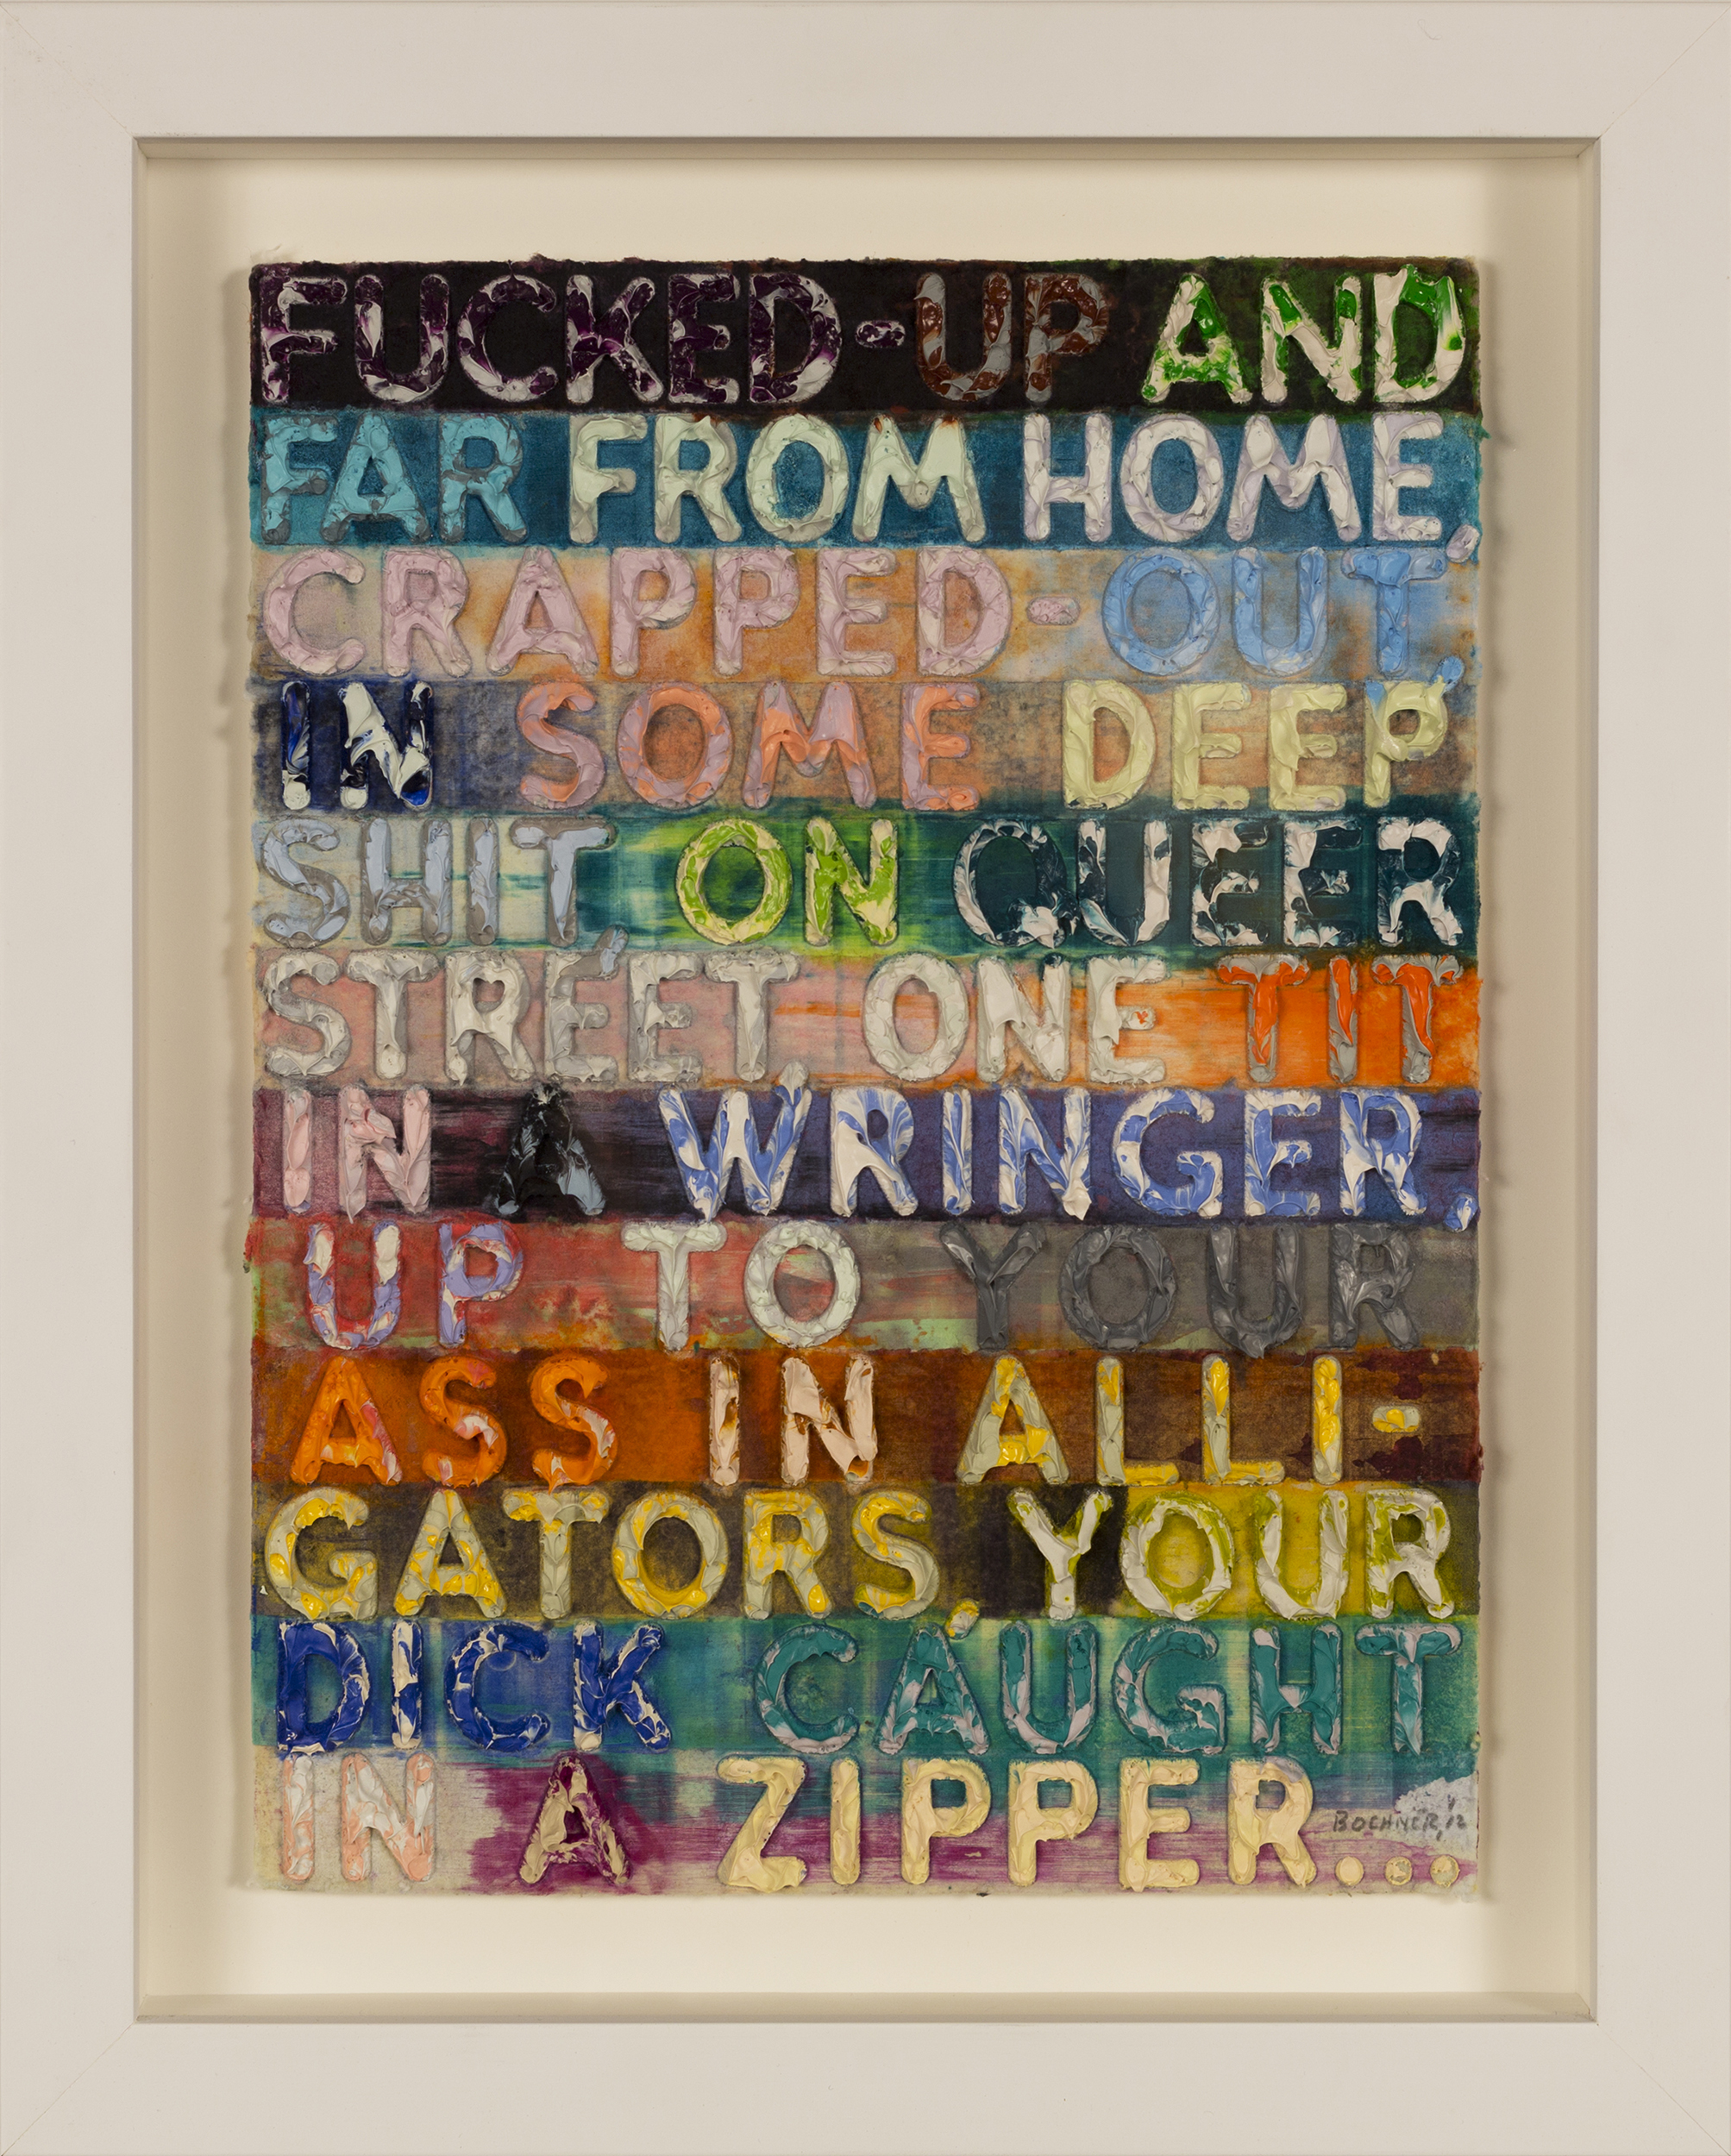 SOLD  Fucked Up   ,  Monoprint with collage, engraving, and embossment on hand-dyed paper, 2012, 11 7/8 x 8 7/8 inches